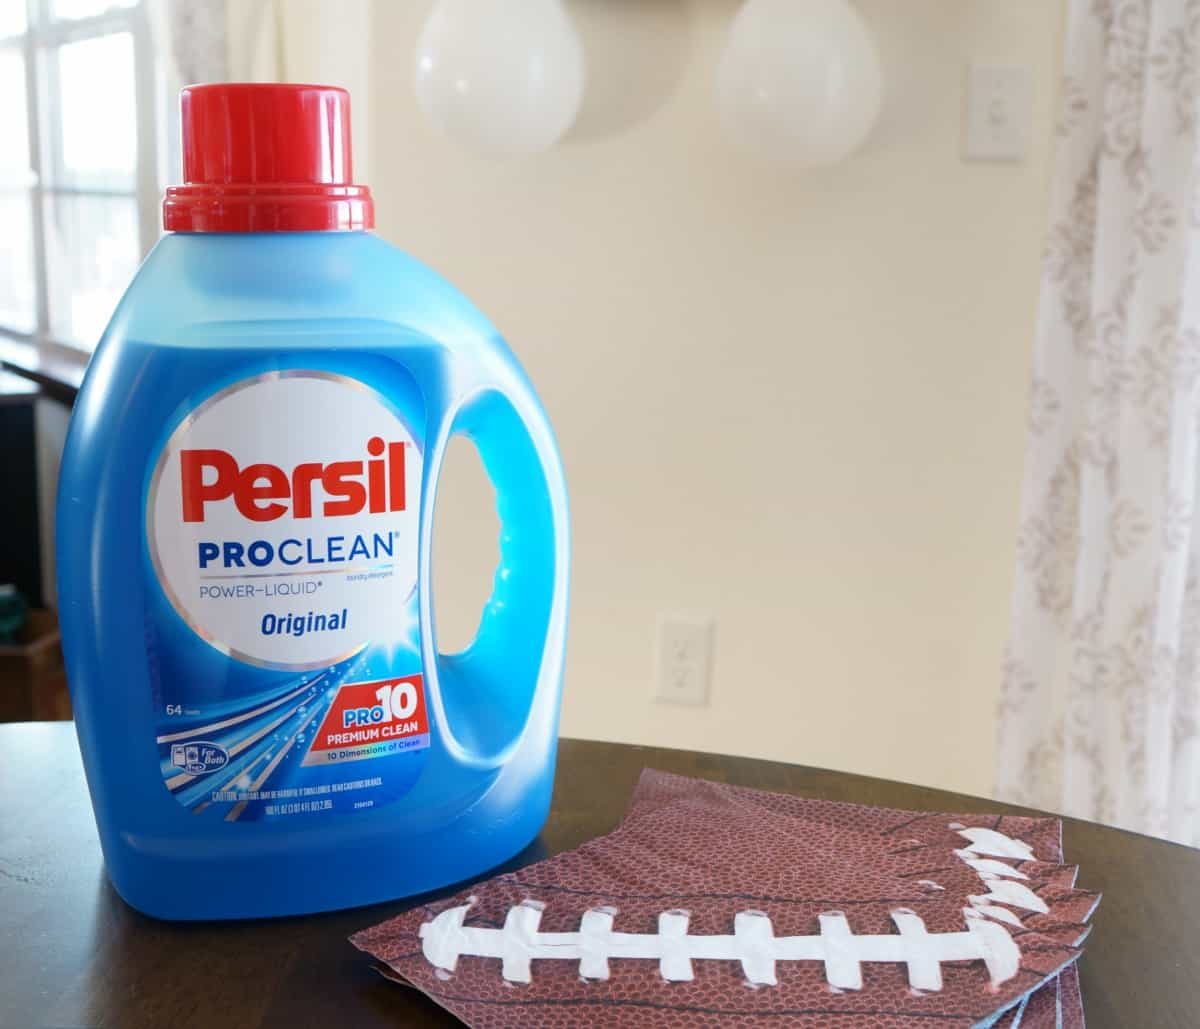 Persil® ProClean® Laundry Detergent at Walmart